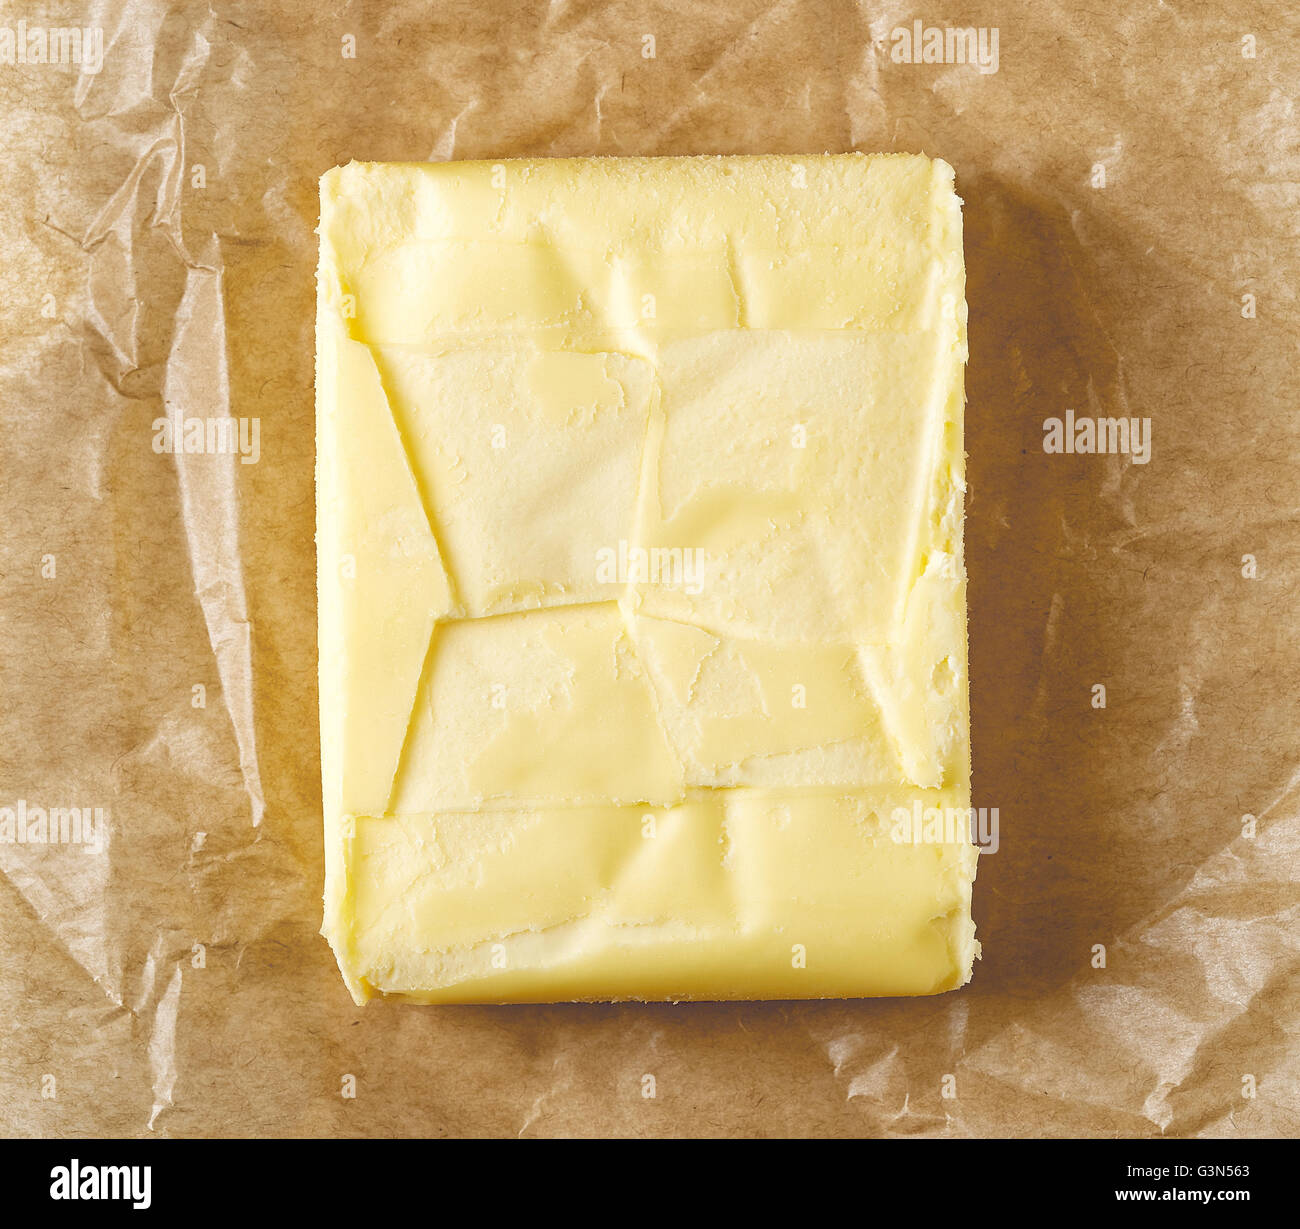 Fresh butter on pergament paper, top view - Stock Image